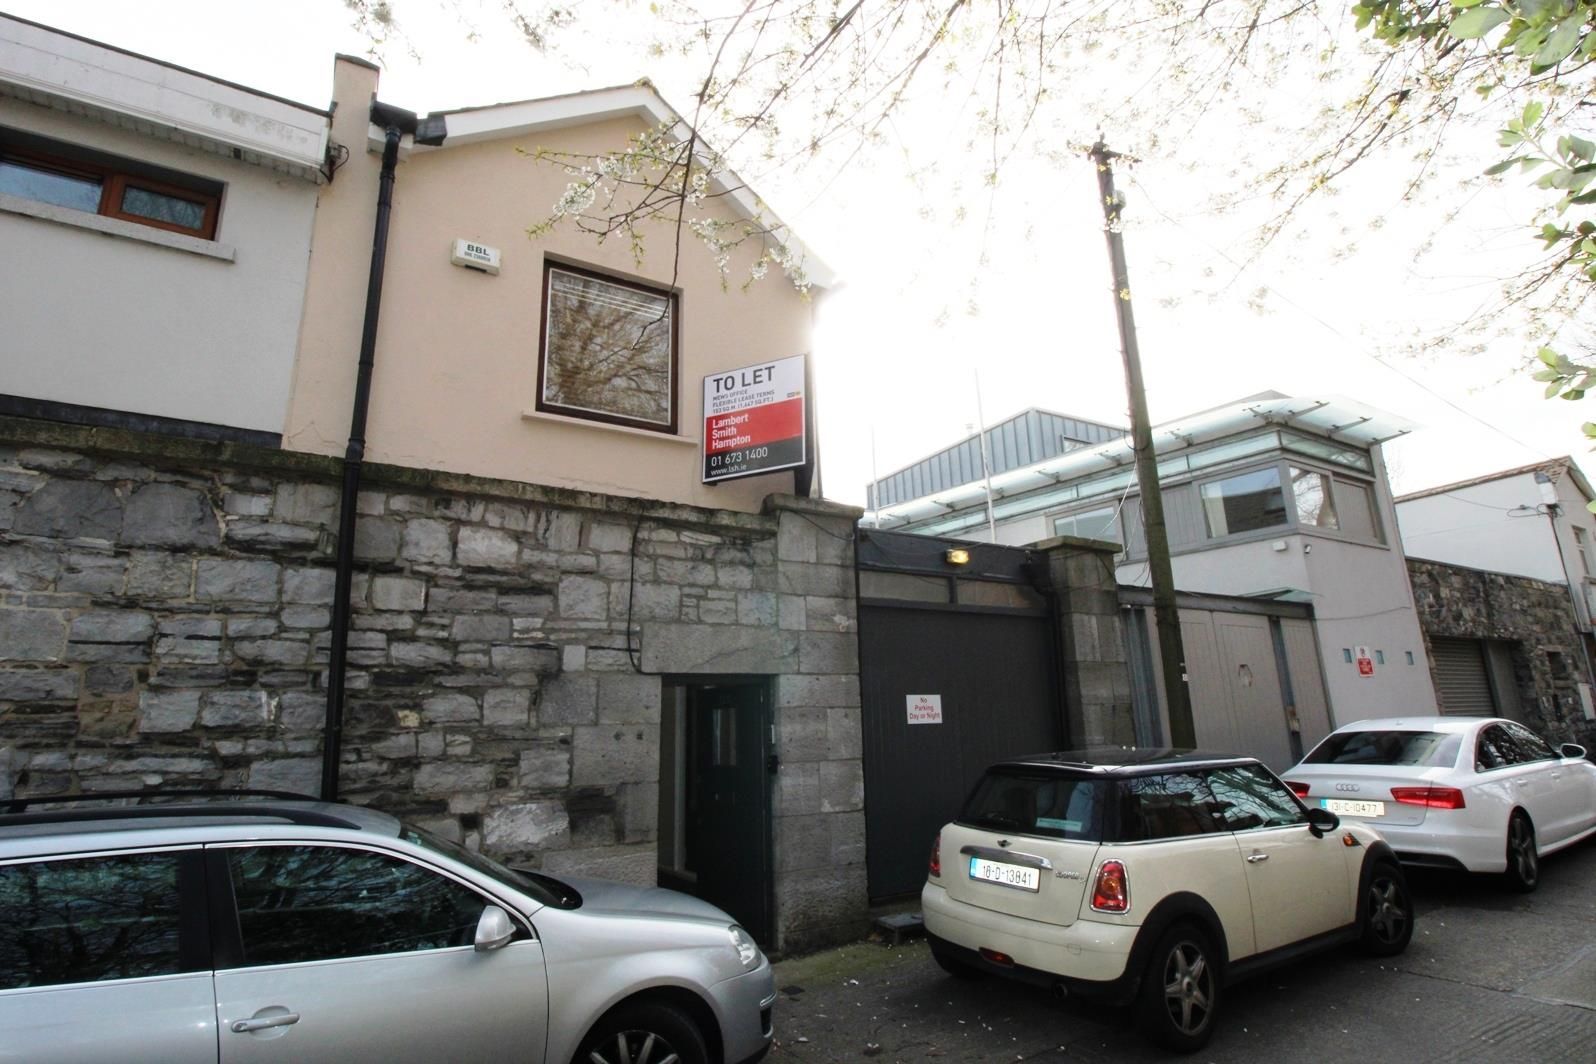 120 Baggot Lane, Dublin 4, D04, Ireland